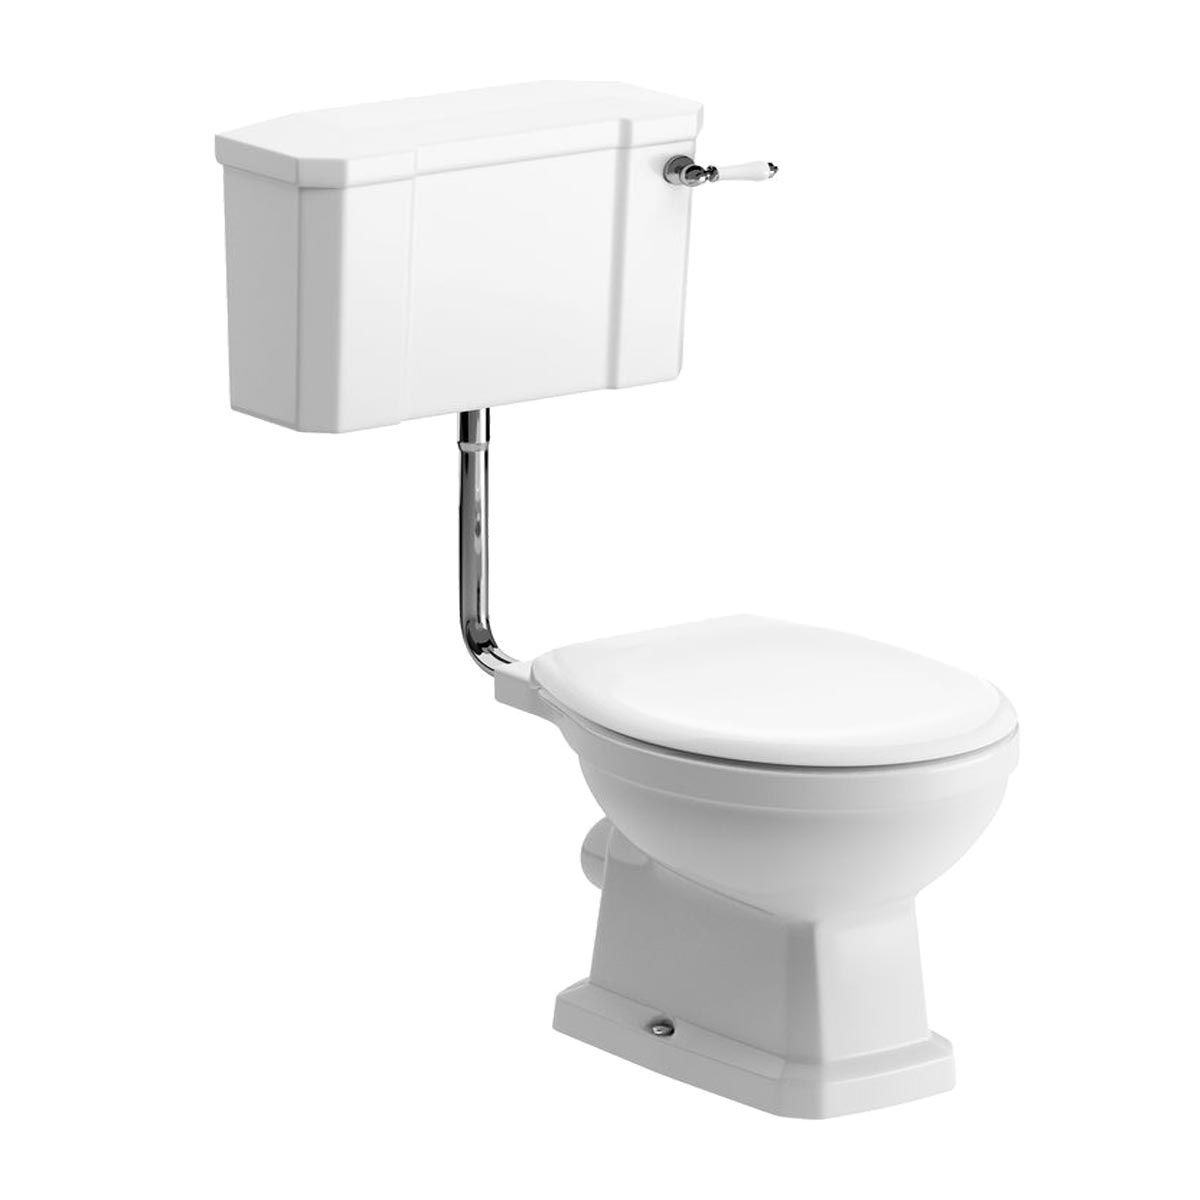 BTL Sherbourne Low Level Toilet with Grey Ash Wood Effect Seat